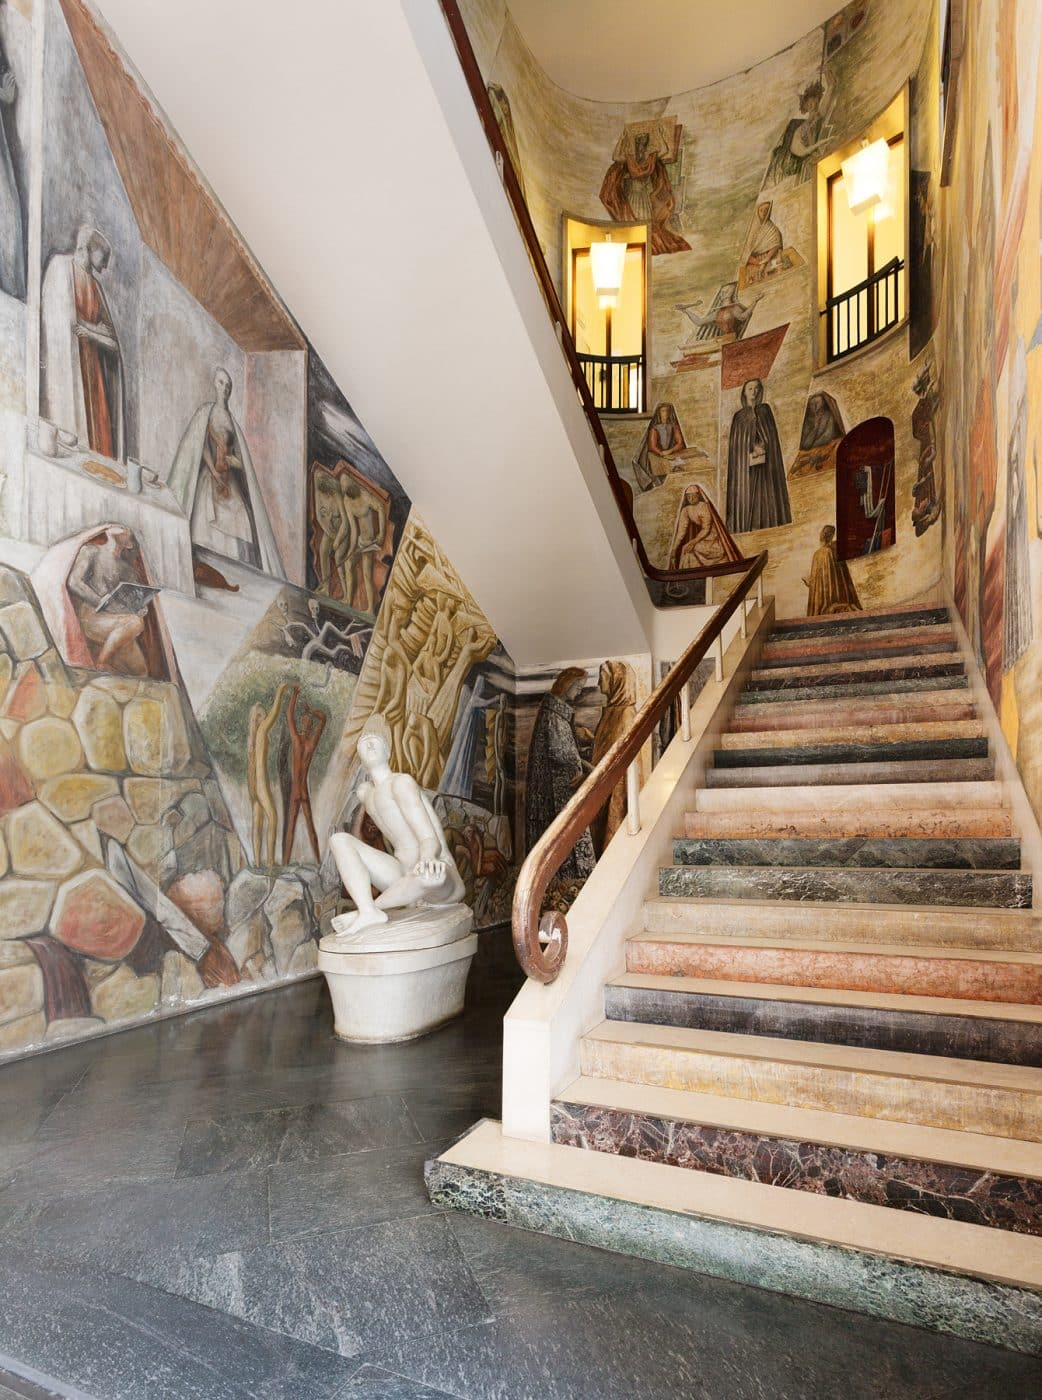 An image of the main staircase at the Palazzo del Bo, from the book Gio Ponti, offered by Taschen